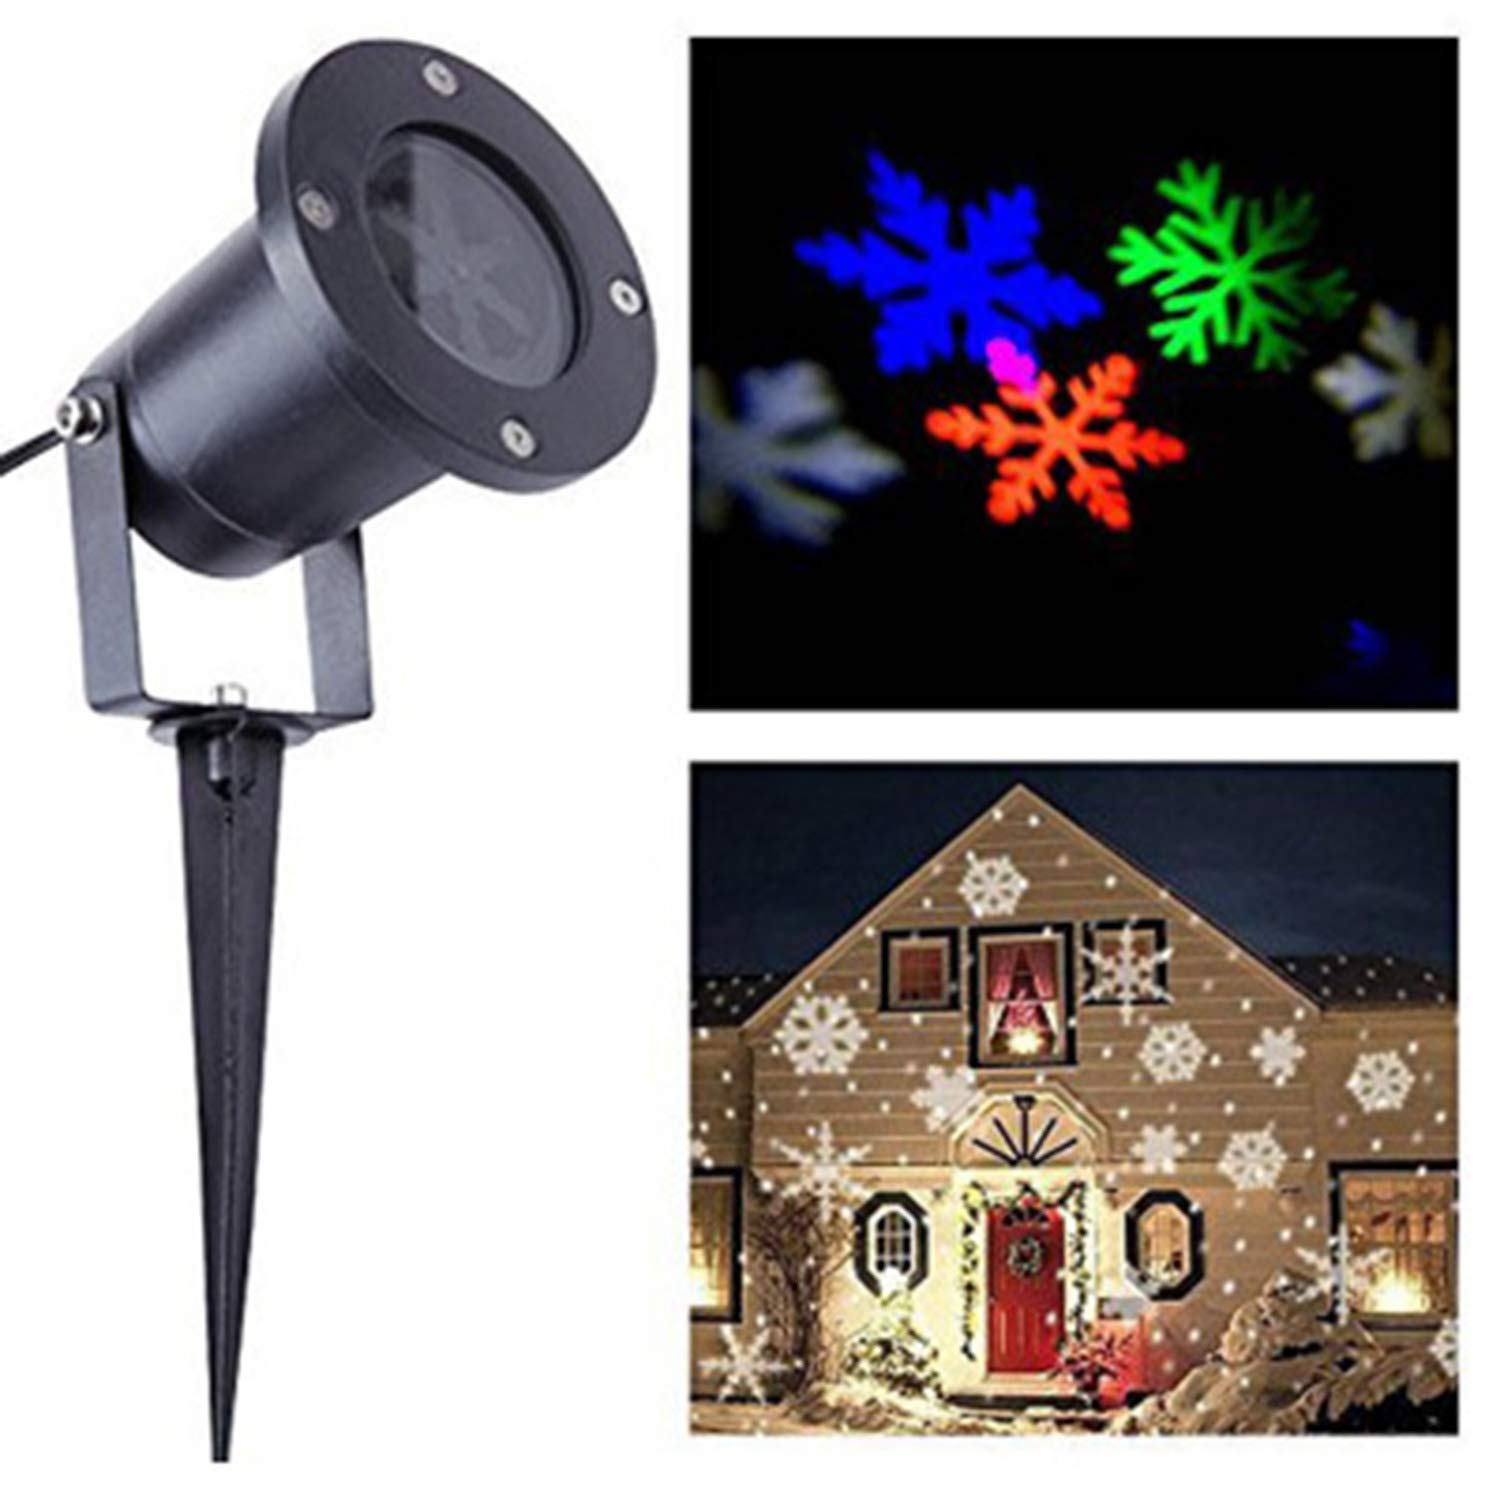 Snow Light LED Outdoor Waterproof Snowflake Project Light Effect Light Christmas Decoration Light Lawn Landscape Light